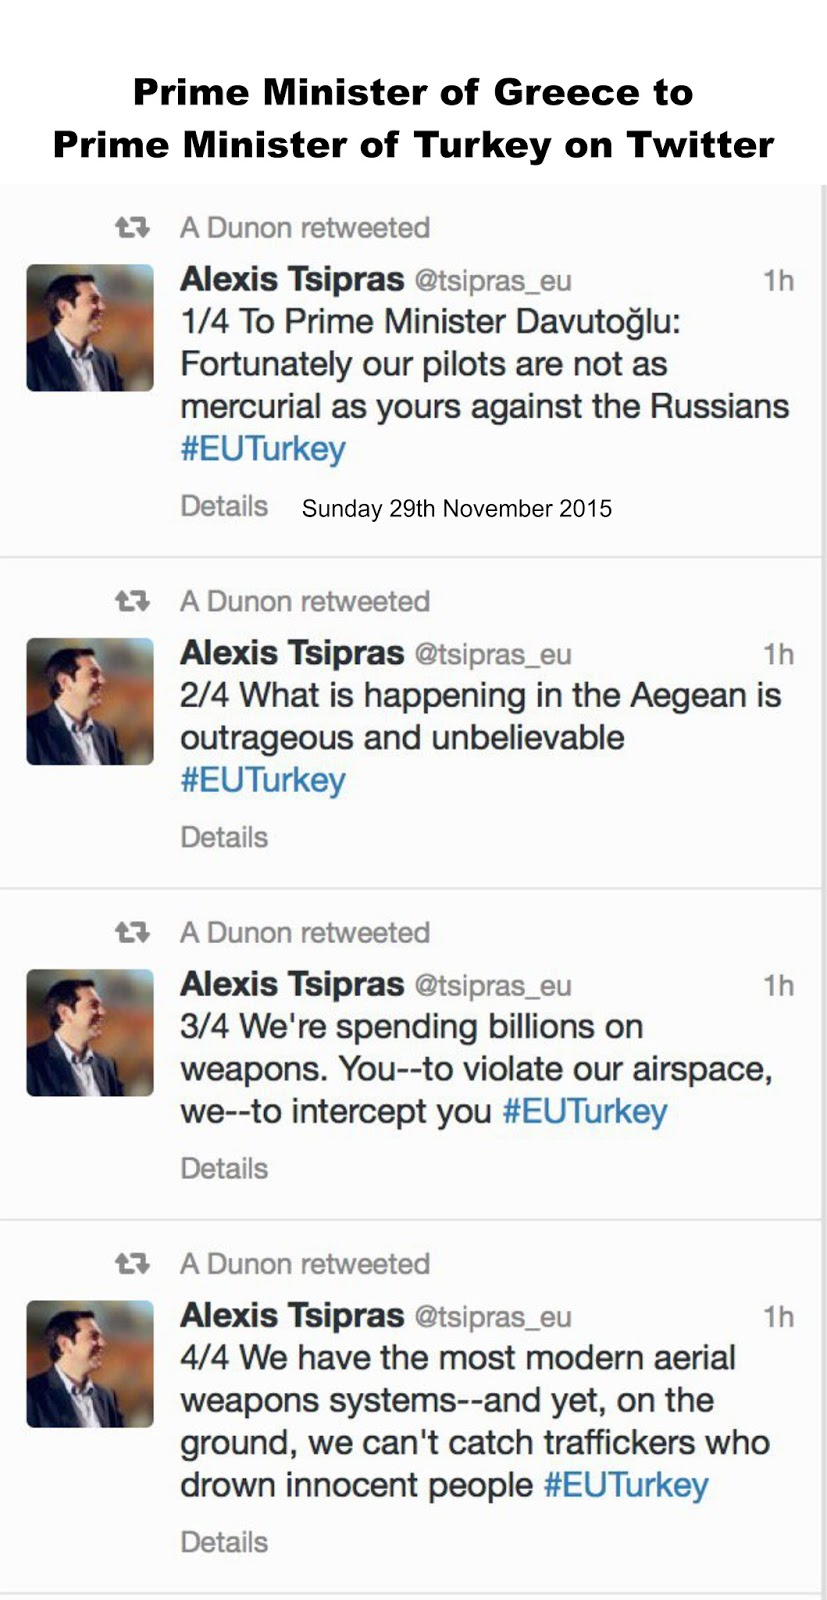 http://www.theguardian.com/world/2015/nov/30/greek-pm-goads-turkish-pm-on-twitter-over-downing-of-russian-jet?CMP=twt_gu